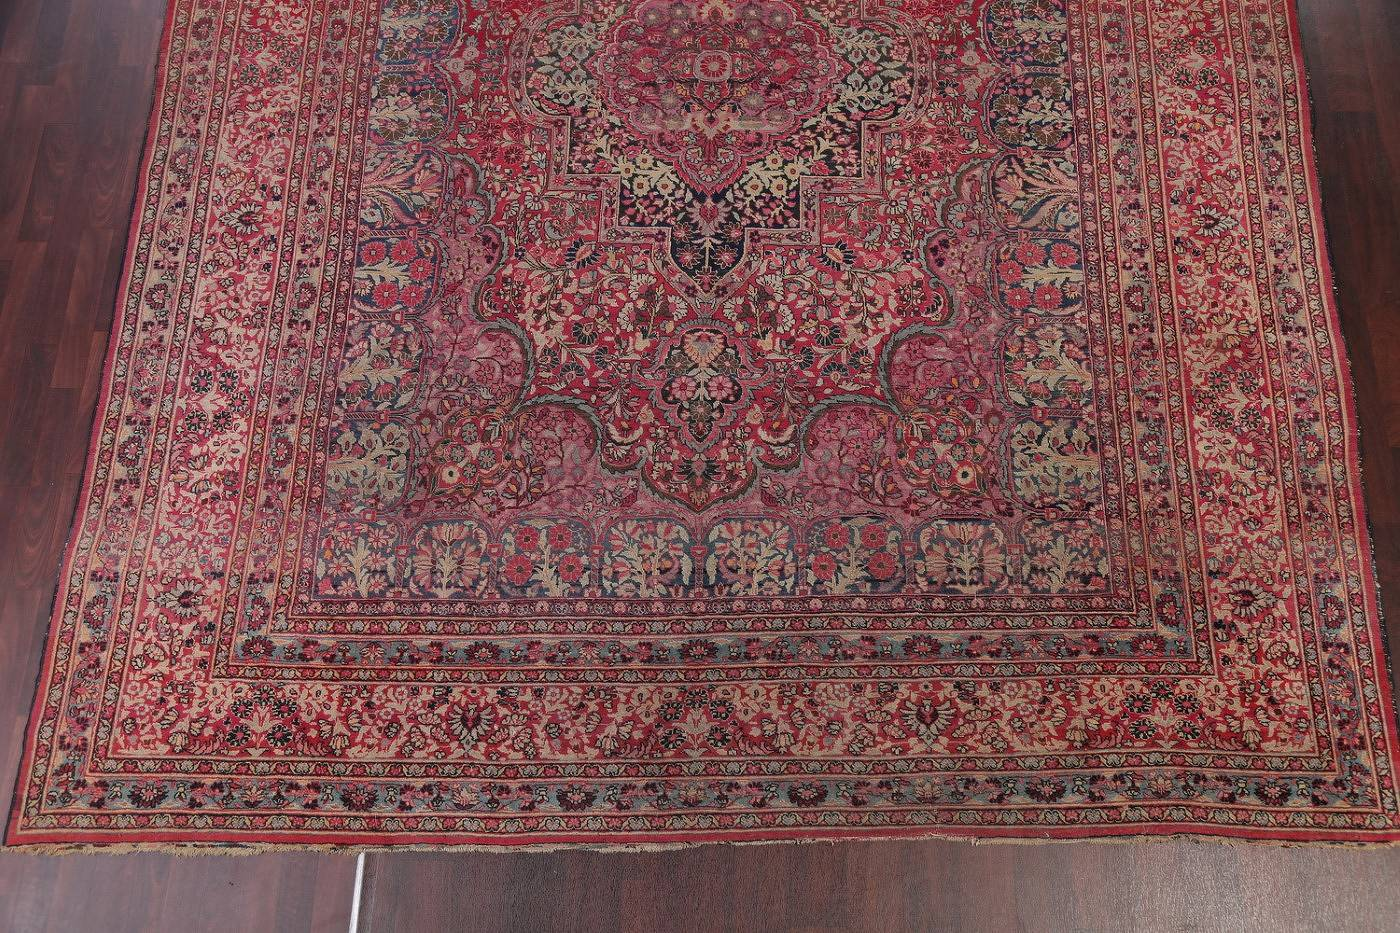 Antique Floral Red Dorokhsh Persian Hand-Knotted Area Rug Wool 11x14